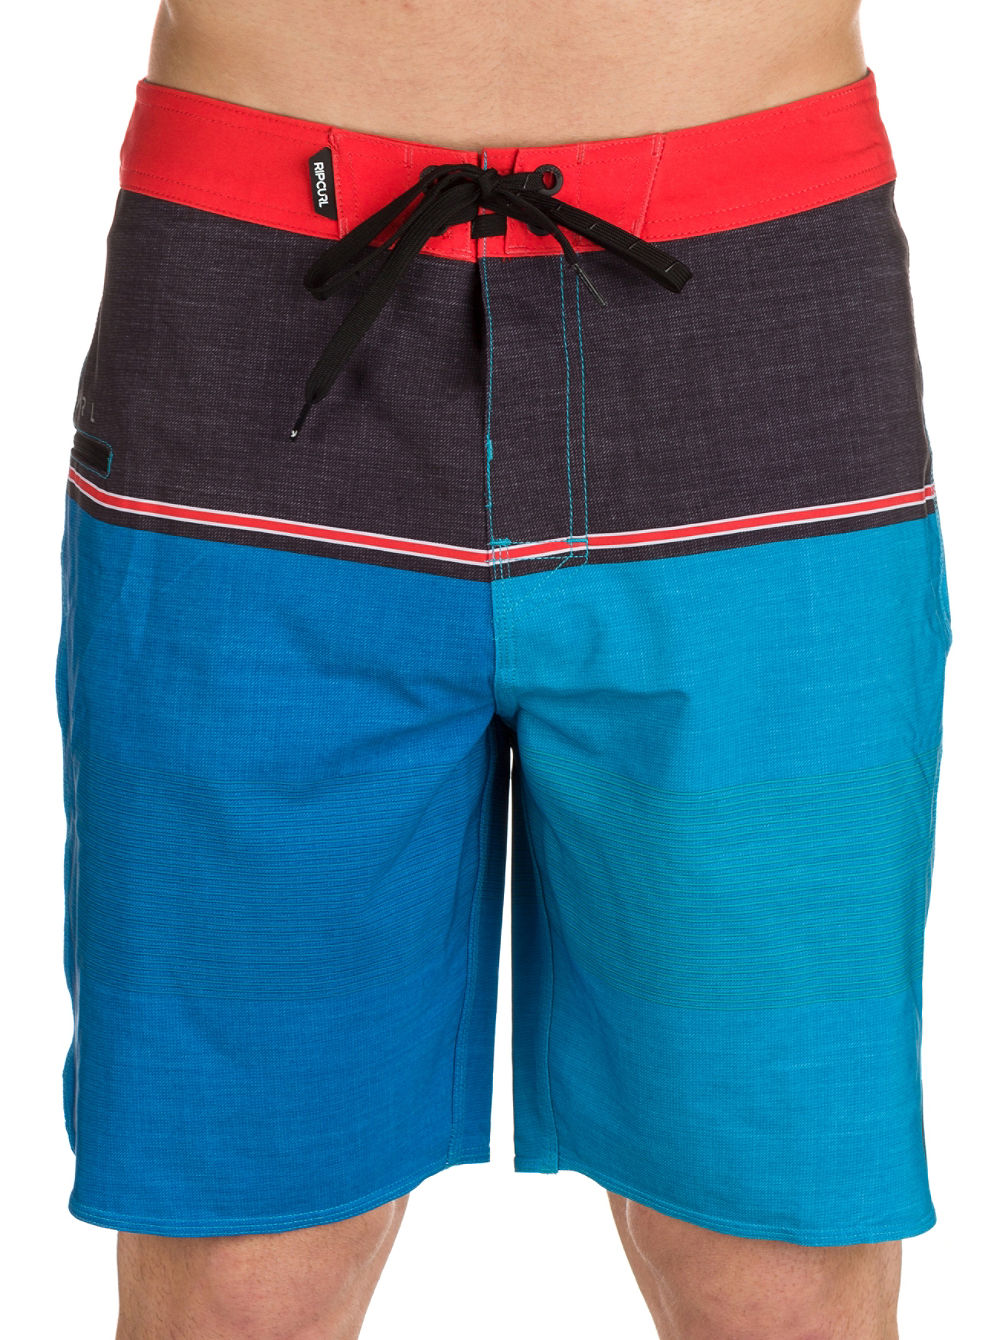 "Mirage Sector 19"" Boardshorts"